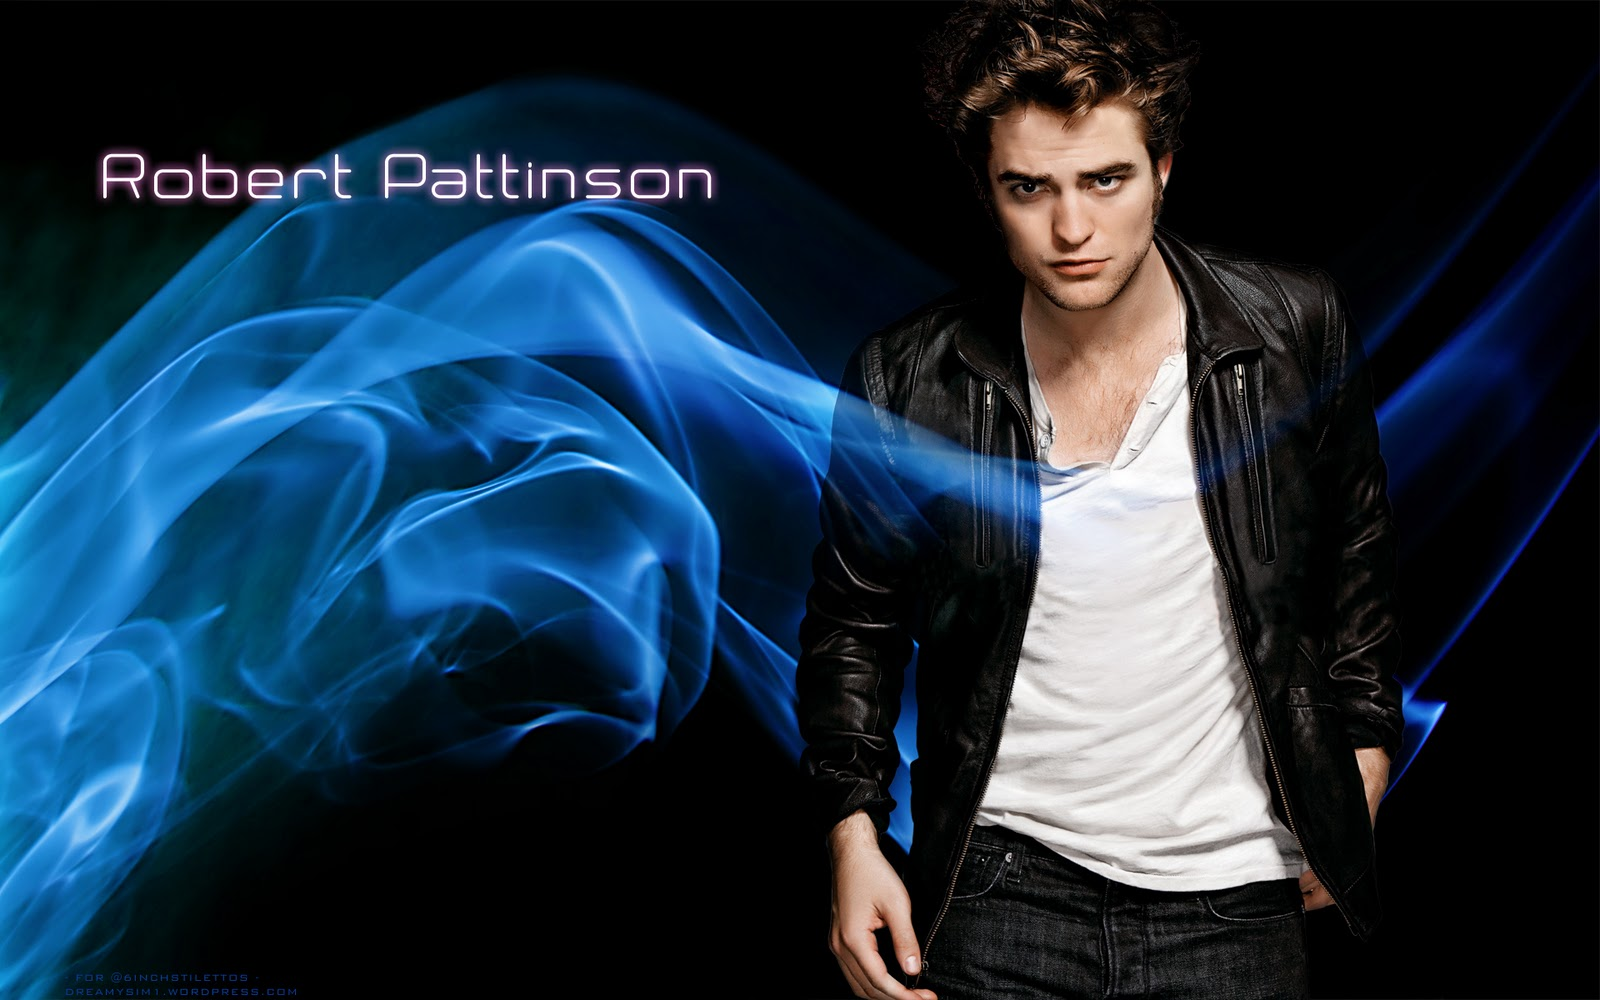 http://1.bp.blogspot.com/-rXM9L0TFwtQ/TueVA0syF5I/AAAAAAAAHvQ/_E_0BMTC-lI/s1600/Robert-Pattinson-Hot-Wallpapers-3.jpg